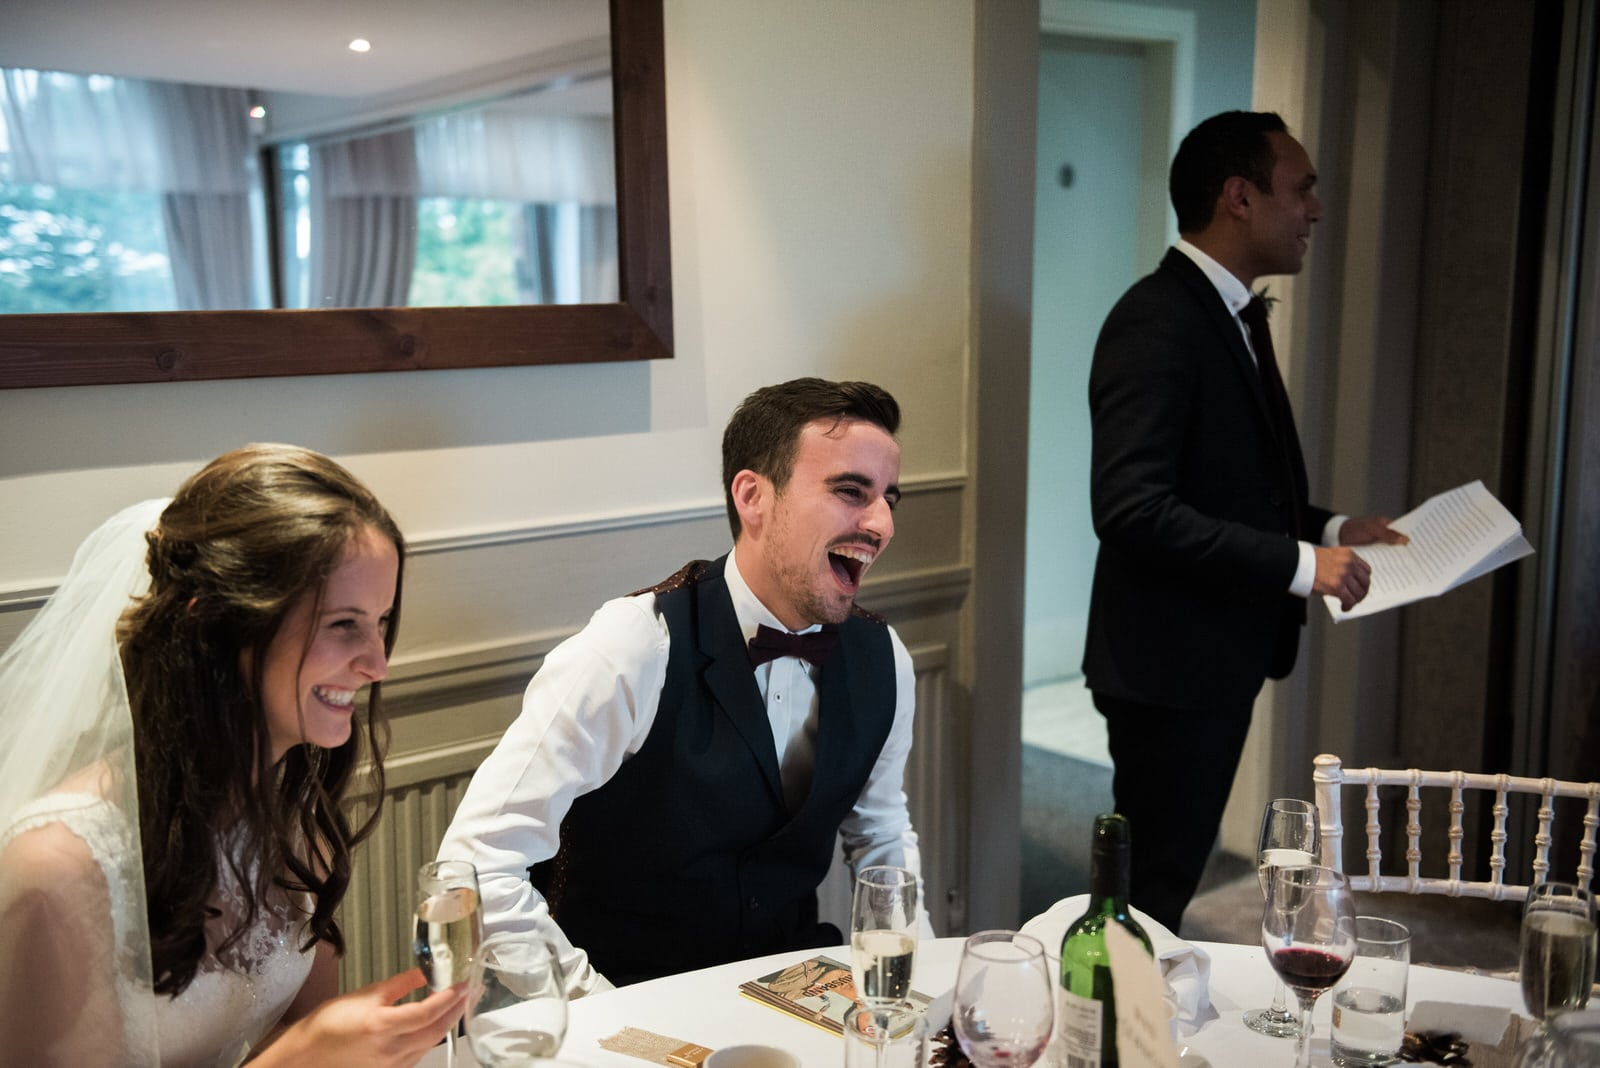 Whirlowbrook Hall wedding photography - bride and groom laughing during speeches